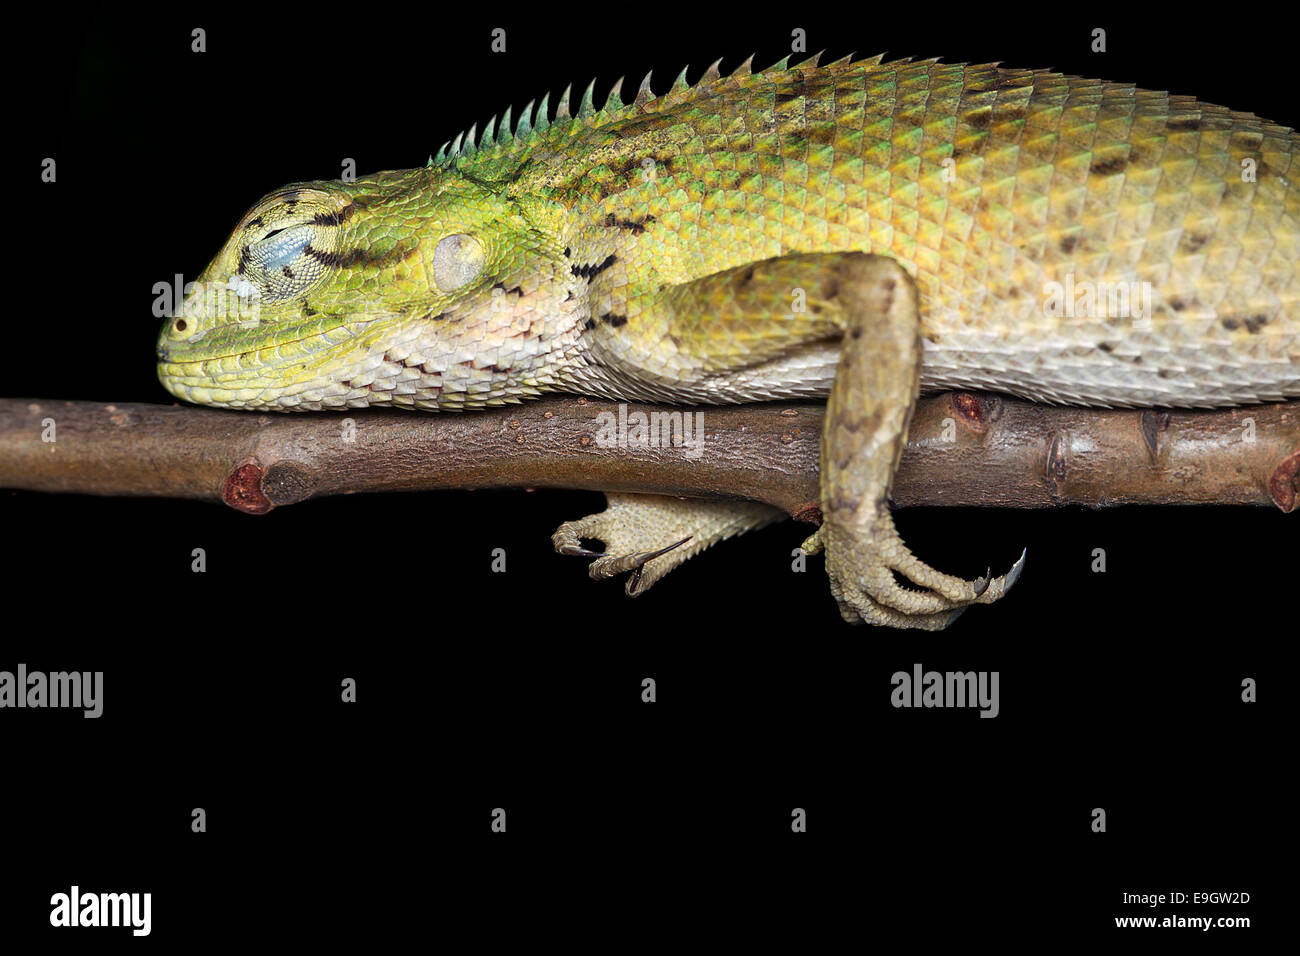 Close-up side profile of Changeable lizard (Calotes versicolor) sleeping on a bush at night in Singapore - Stock Image